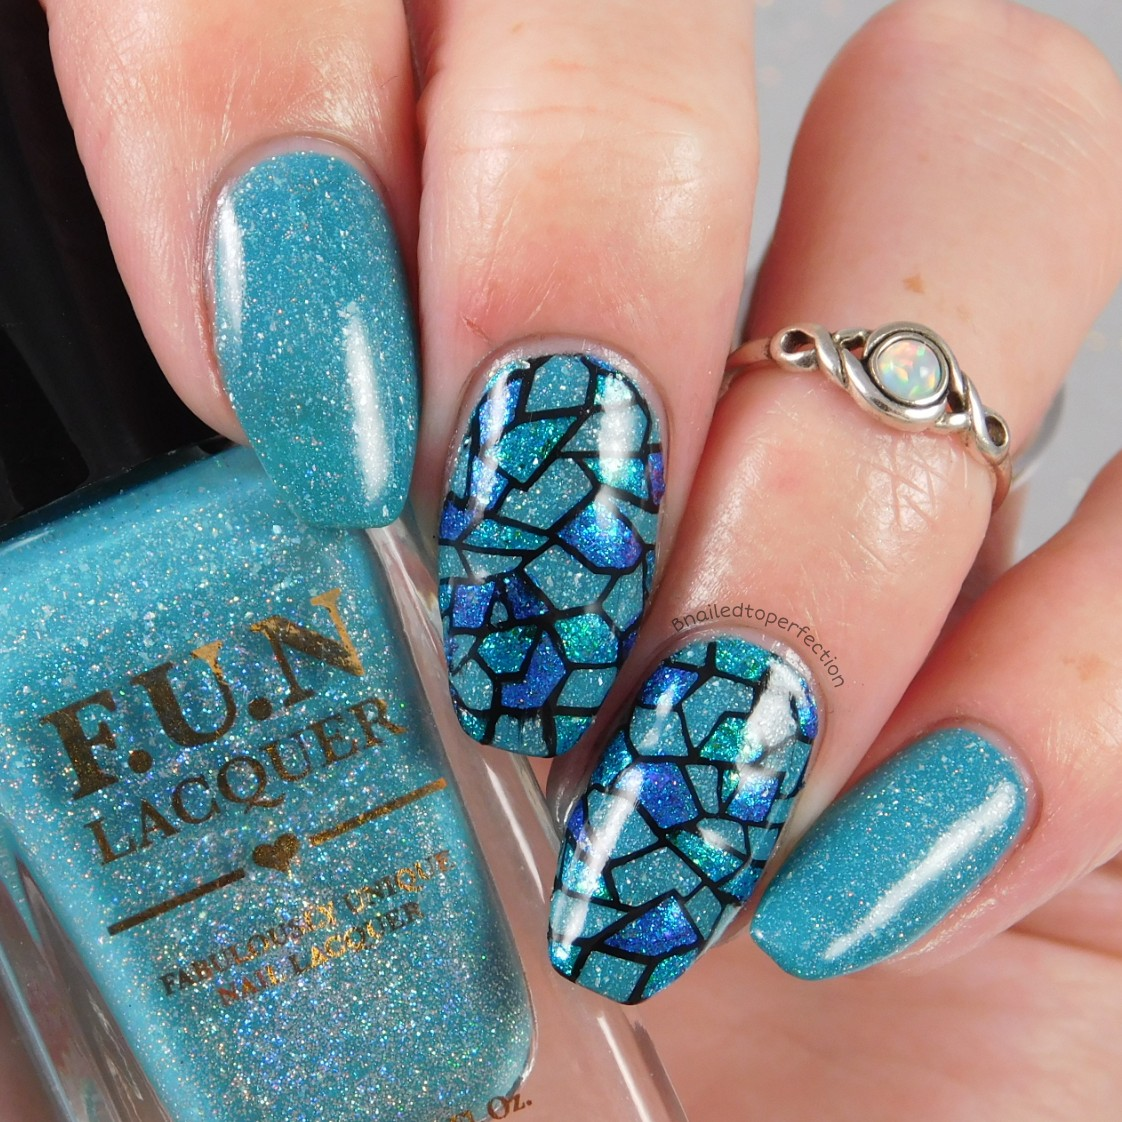 B nailed to perfection 26 great nail art ideas your signature style so for my signature style i went with blues and reverse stamping what other colour would i go with the base colour is magic stone from fun lacquer and prinsesfo Choice Image